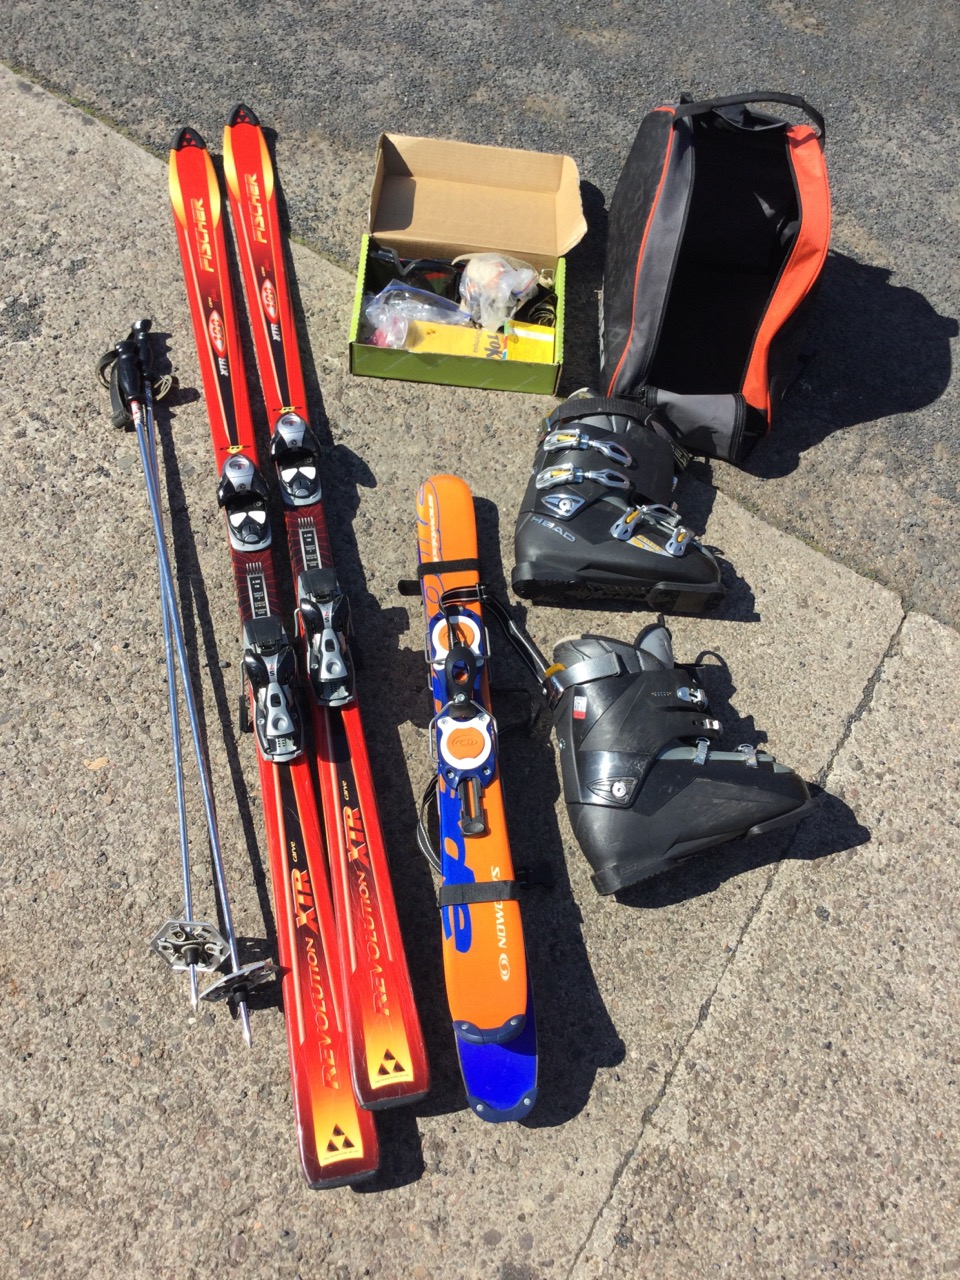 Miscellaneous skiing gear - a pair of red Fischer 190 carver skis with Salomon bindings, a pair of - Image 2 of 3